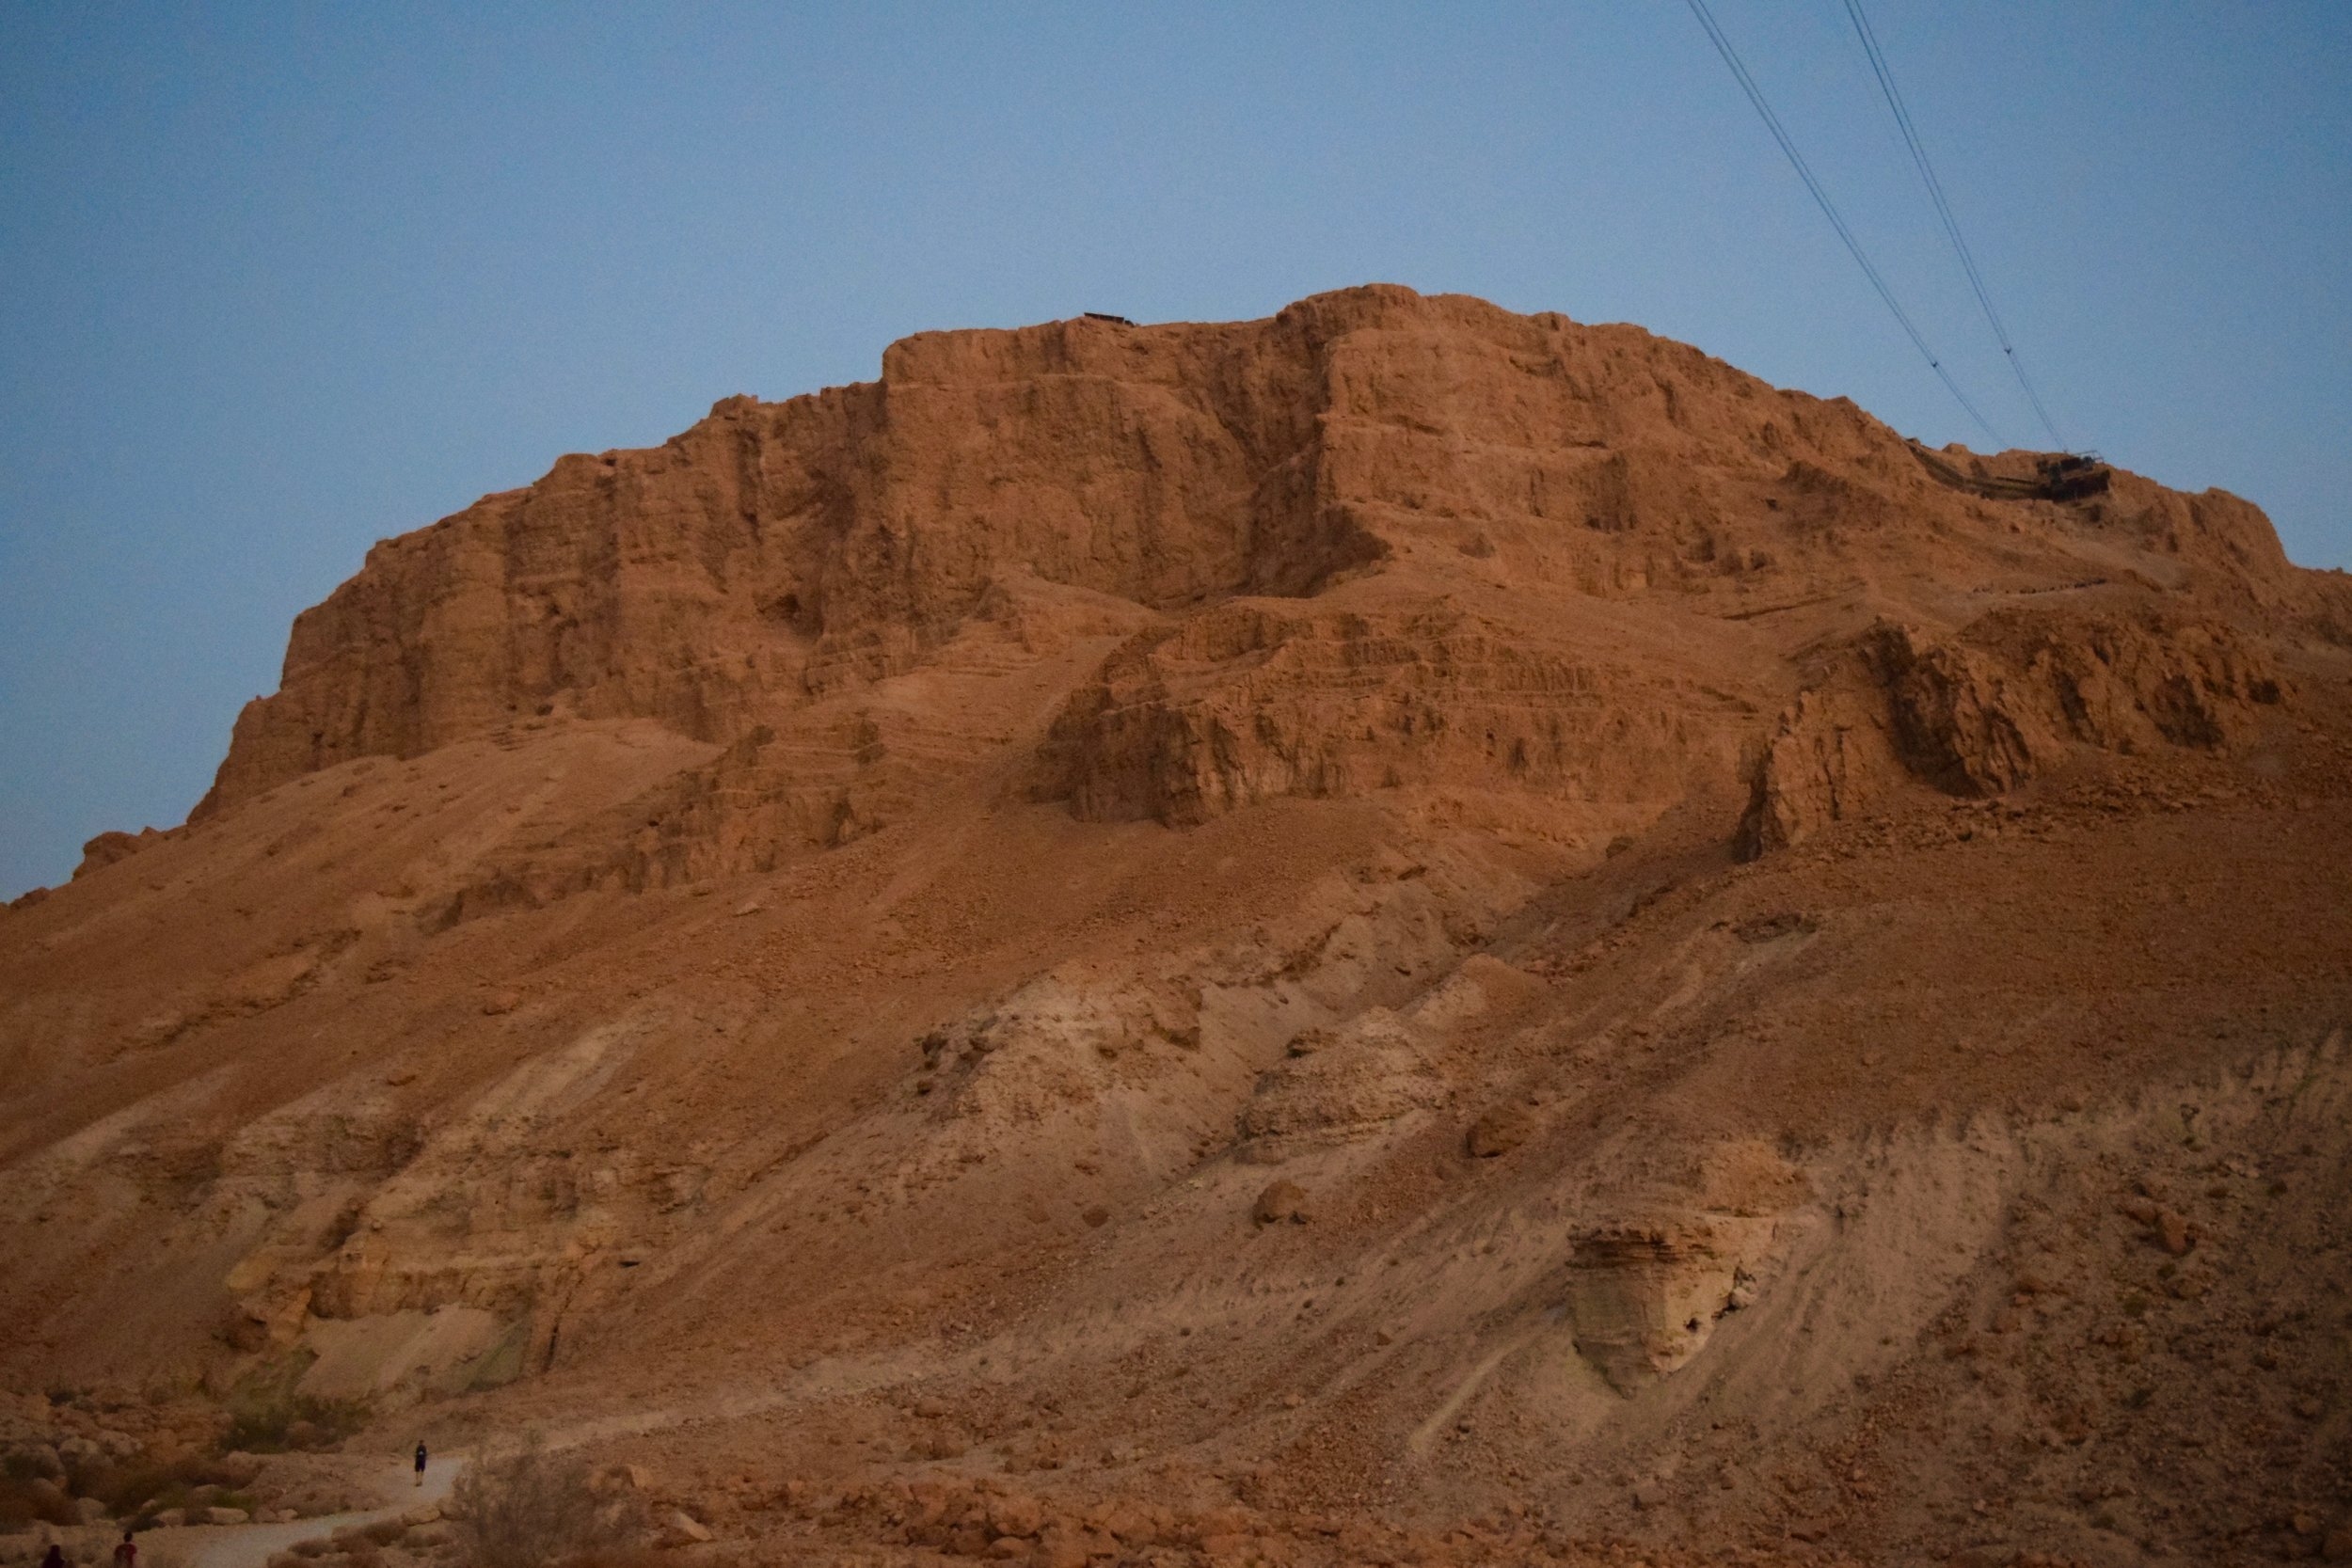 Masada just before the sunrise